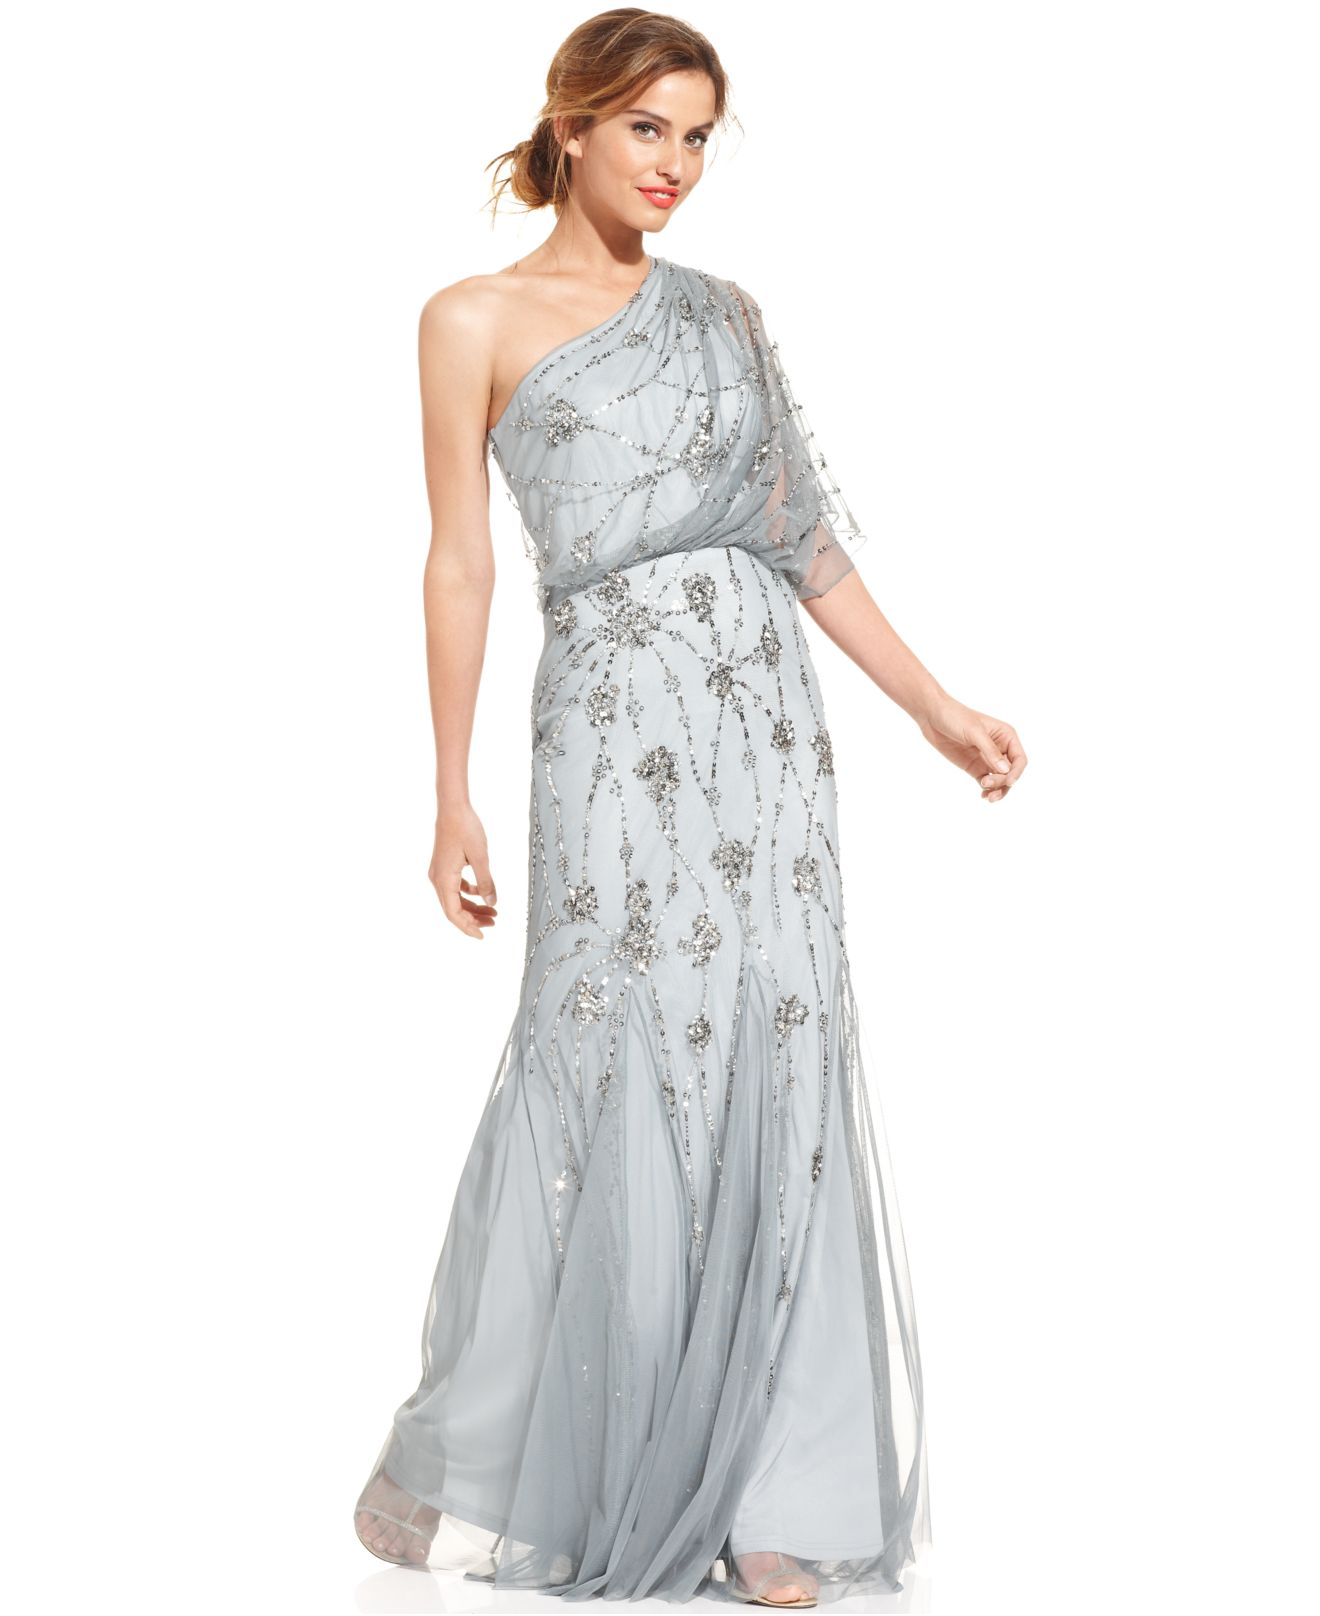 Lyst - Adrianna Papell Oneshoulder Beaded Blouson Gown in Gray